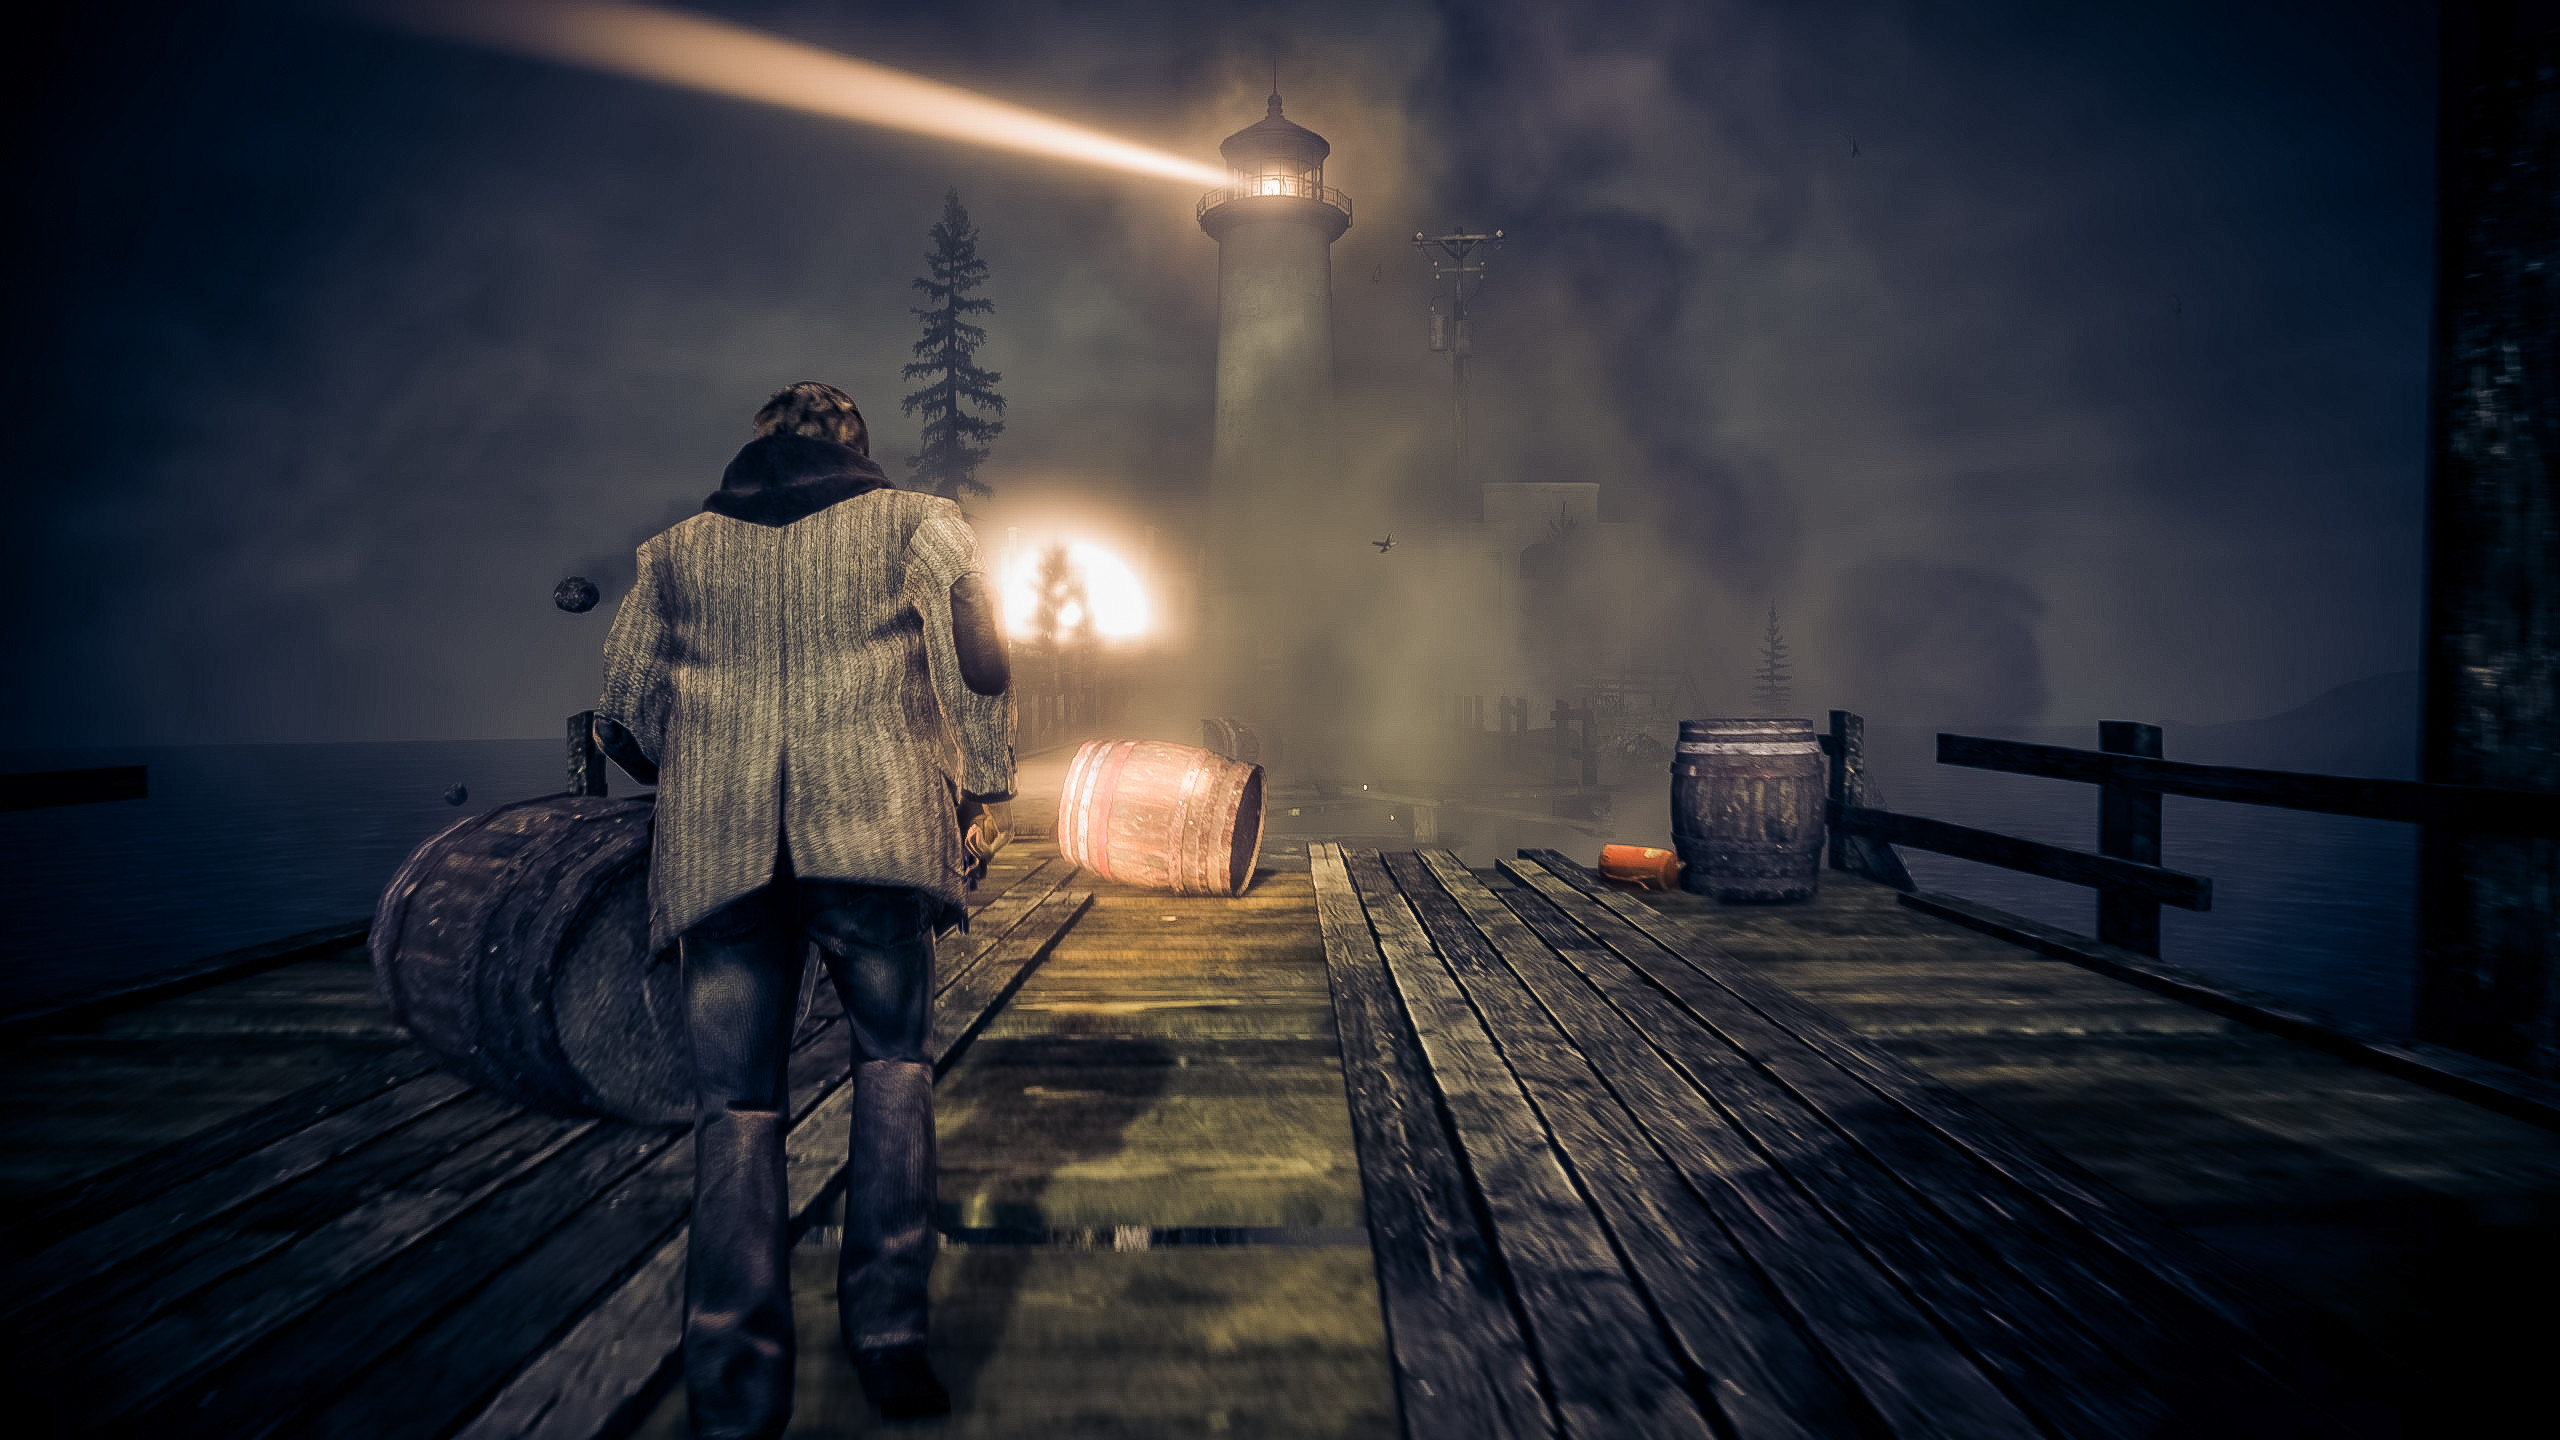 2560x1440 Alan Wake - Lighthouse by wolfleben Alan Wake - Lighthouse by wolfleben